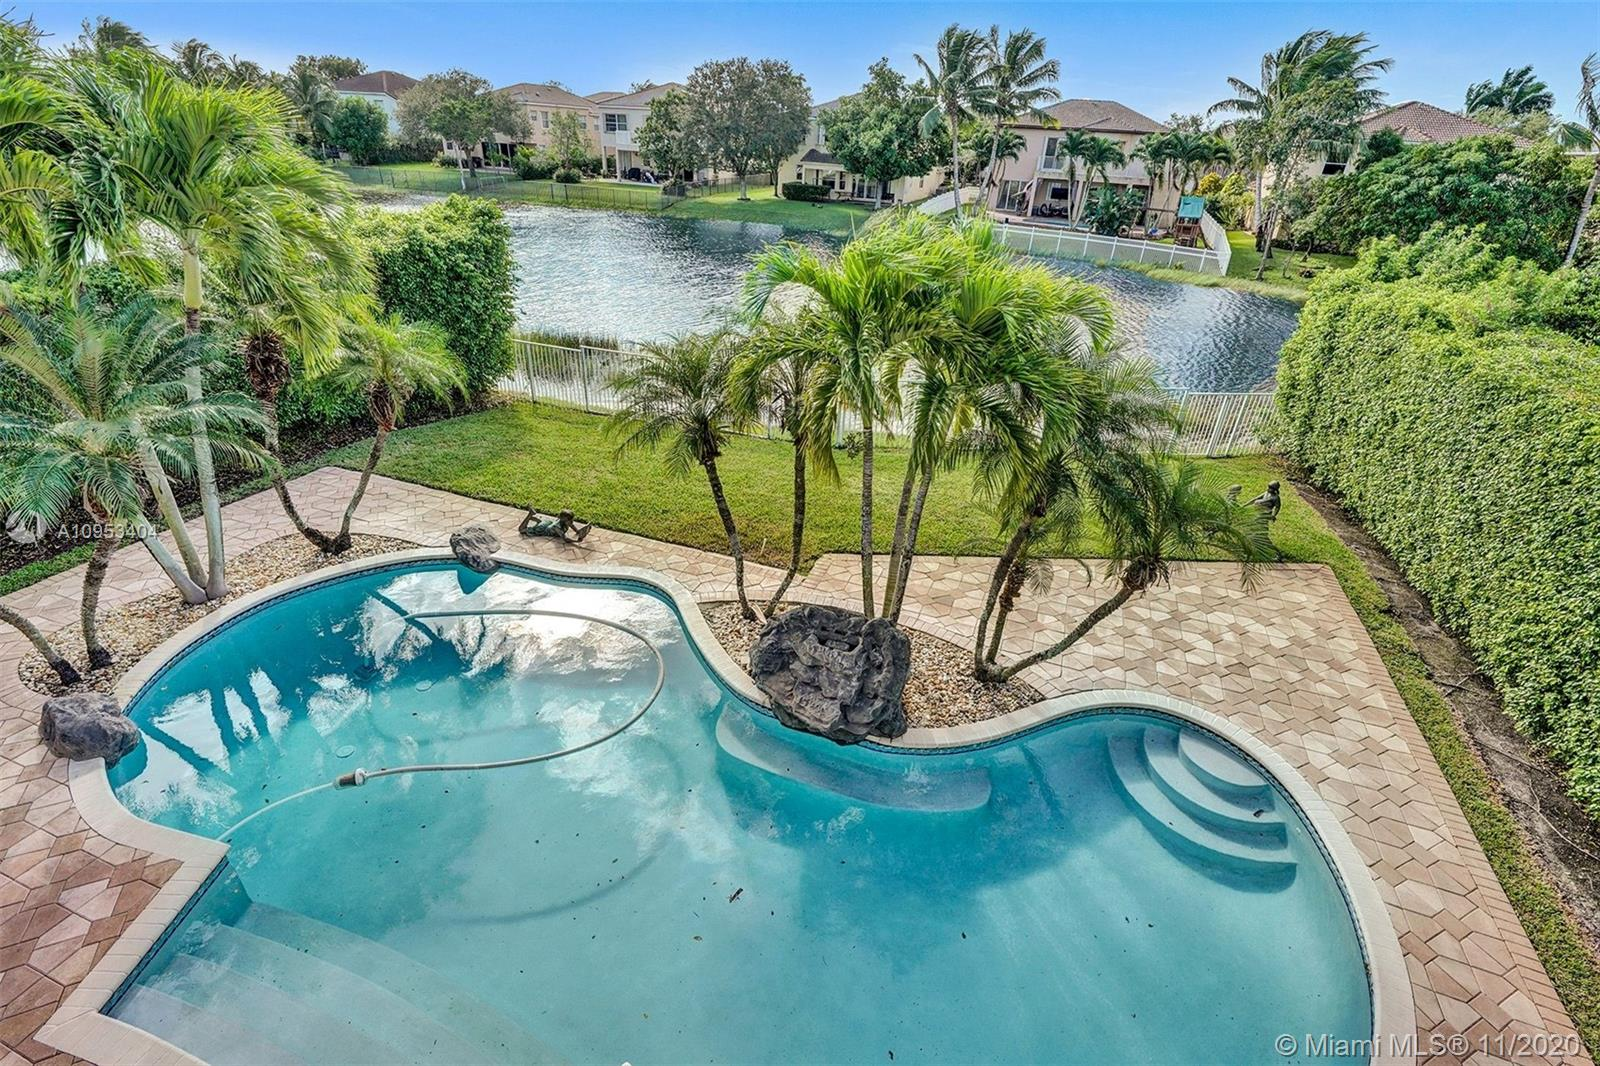 16762 SW 12th St, Pembroke Pines, Florida 33027, 5 Bedrooms Bedrooms, ,4 BathroomsBathrooms,Residential,For Sale,16762 SW 12th St,A10953404